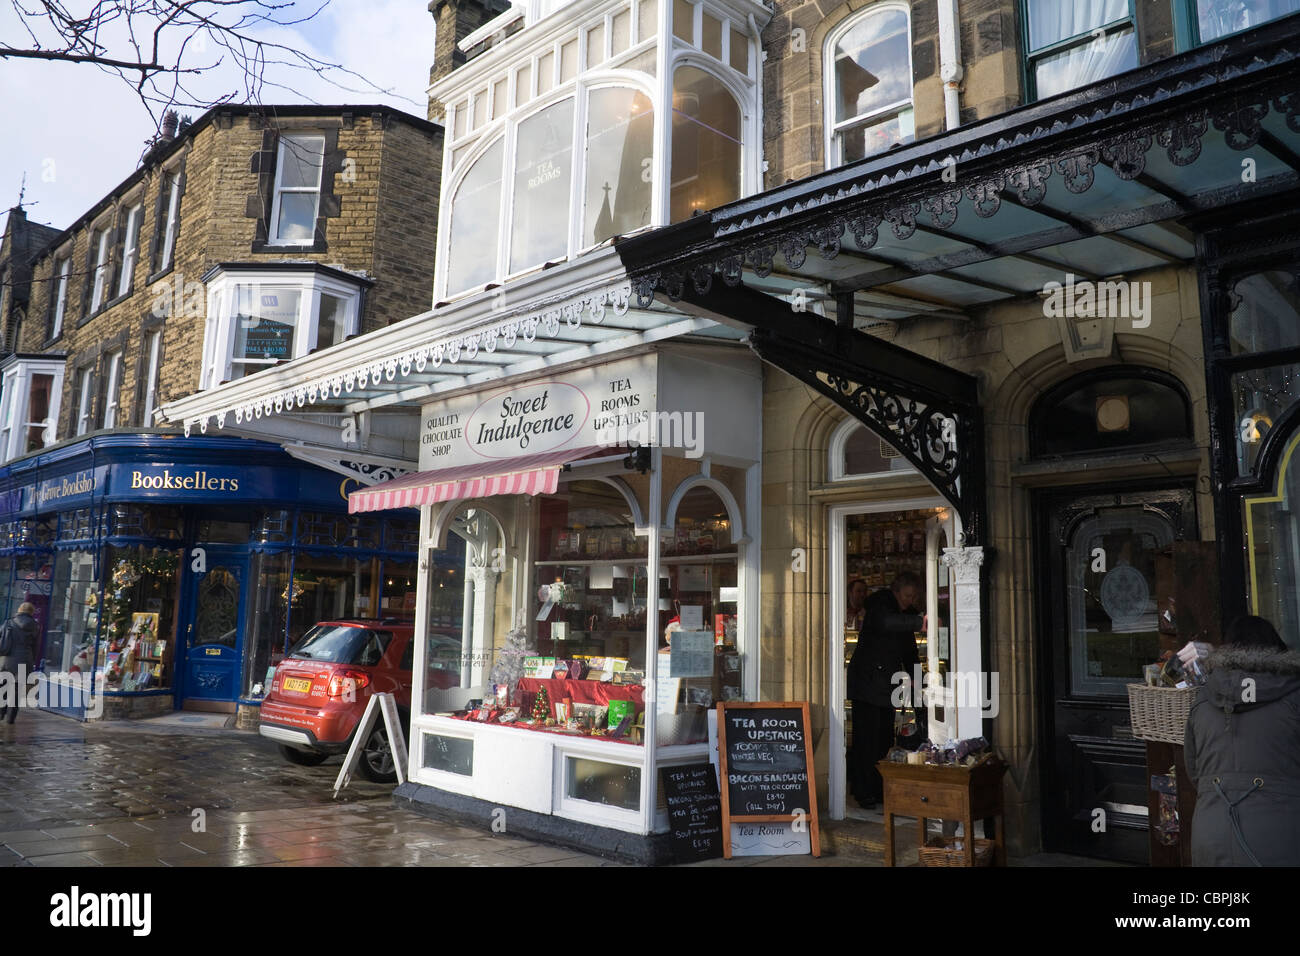 ilkley town stock photos u0026 ilkley town stock images alamy